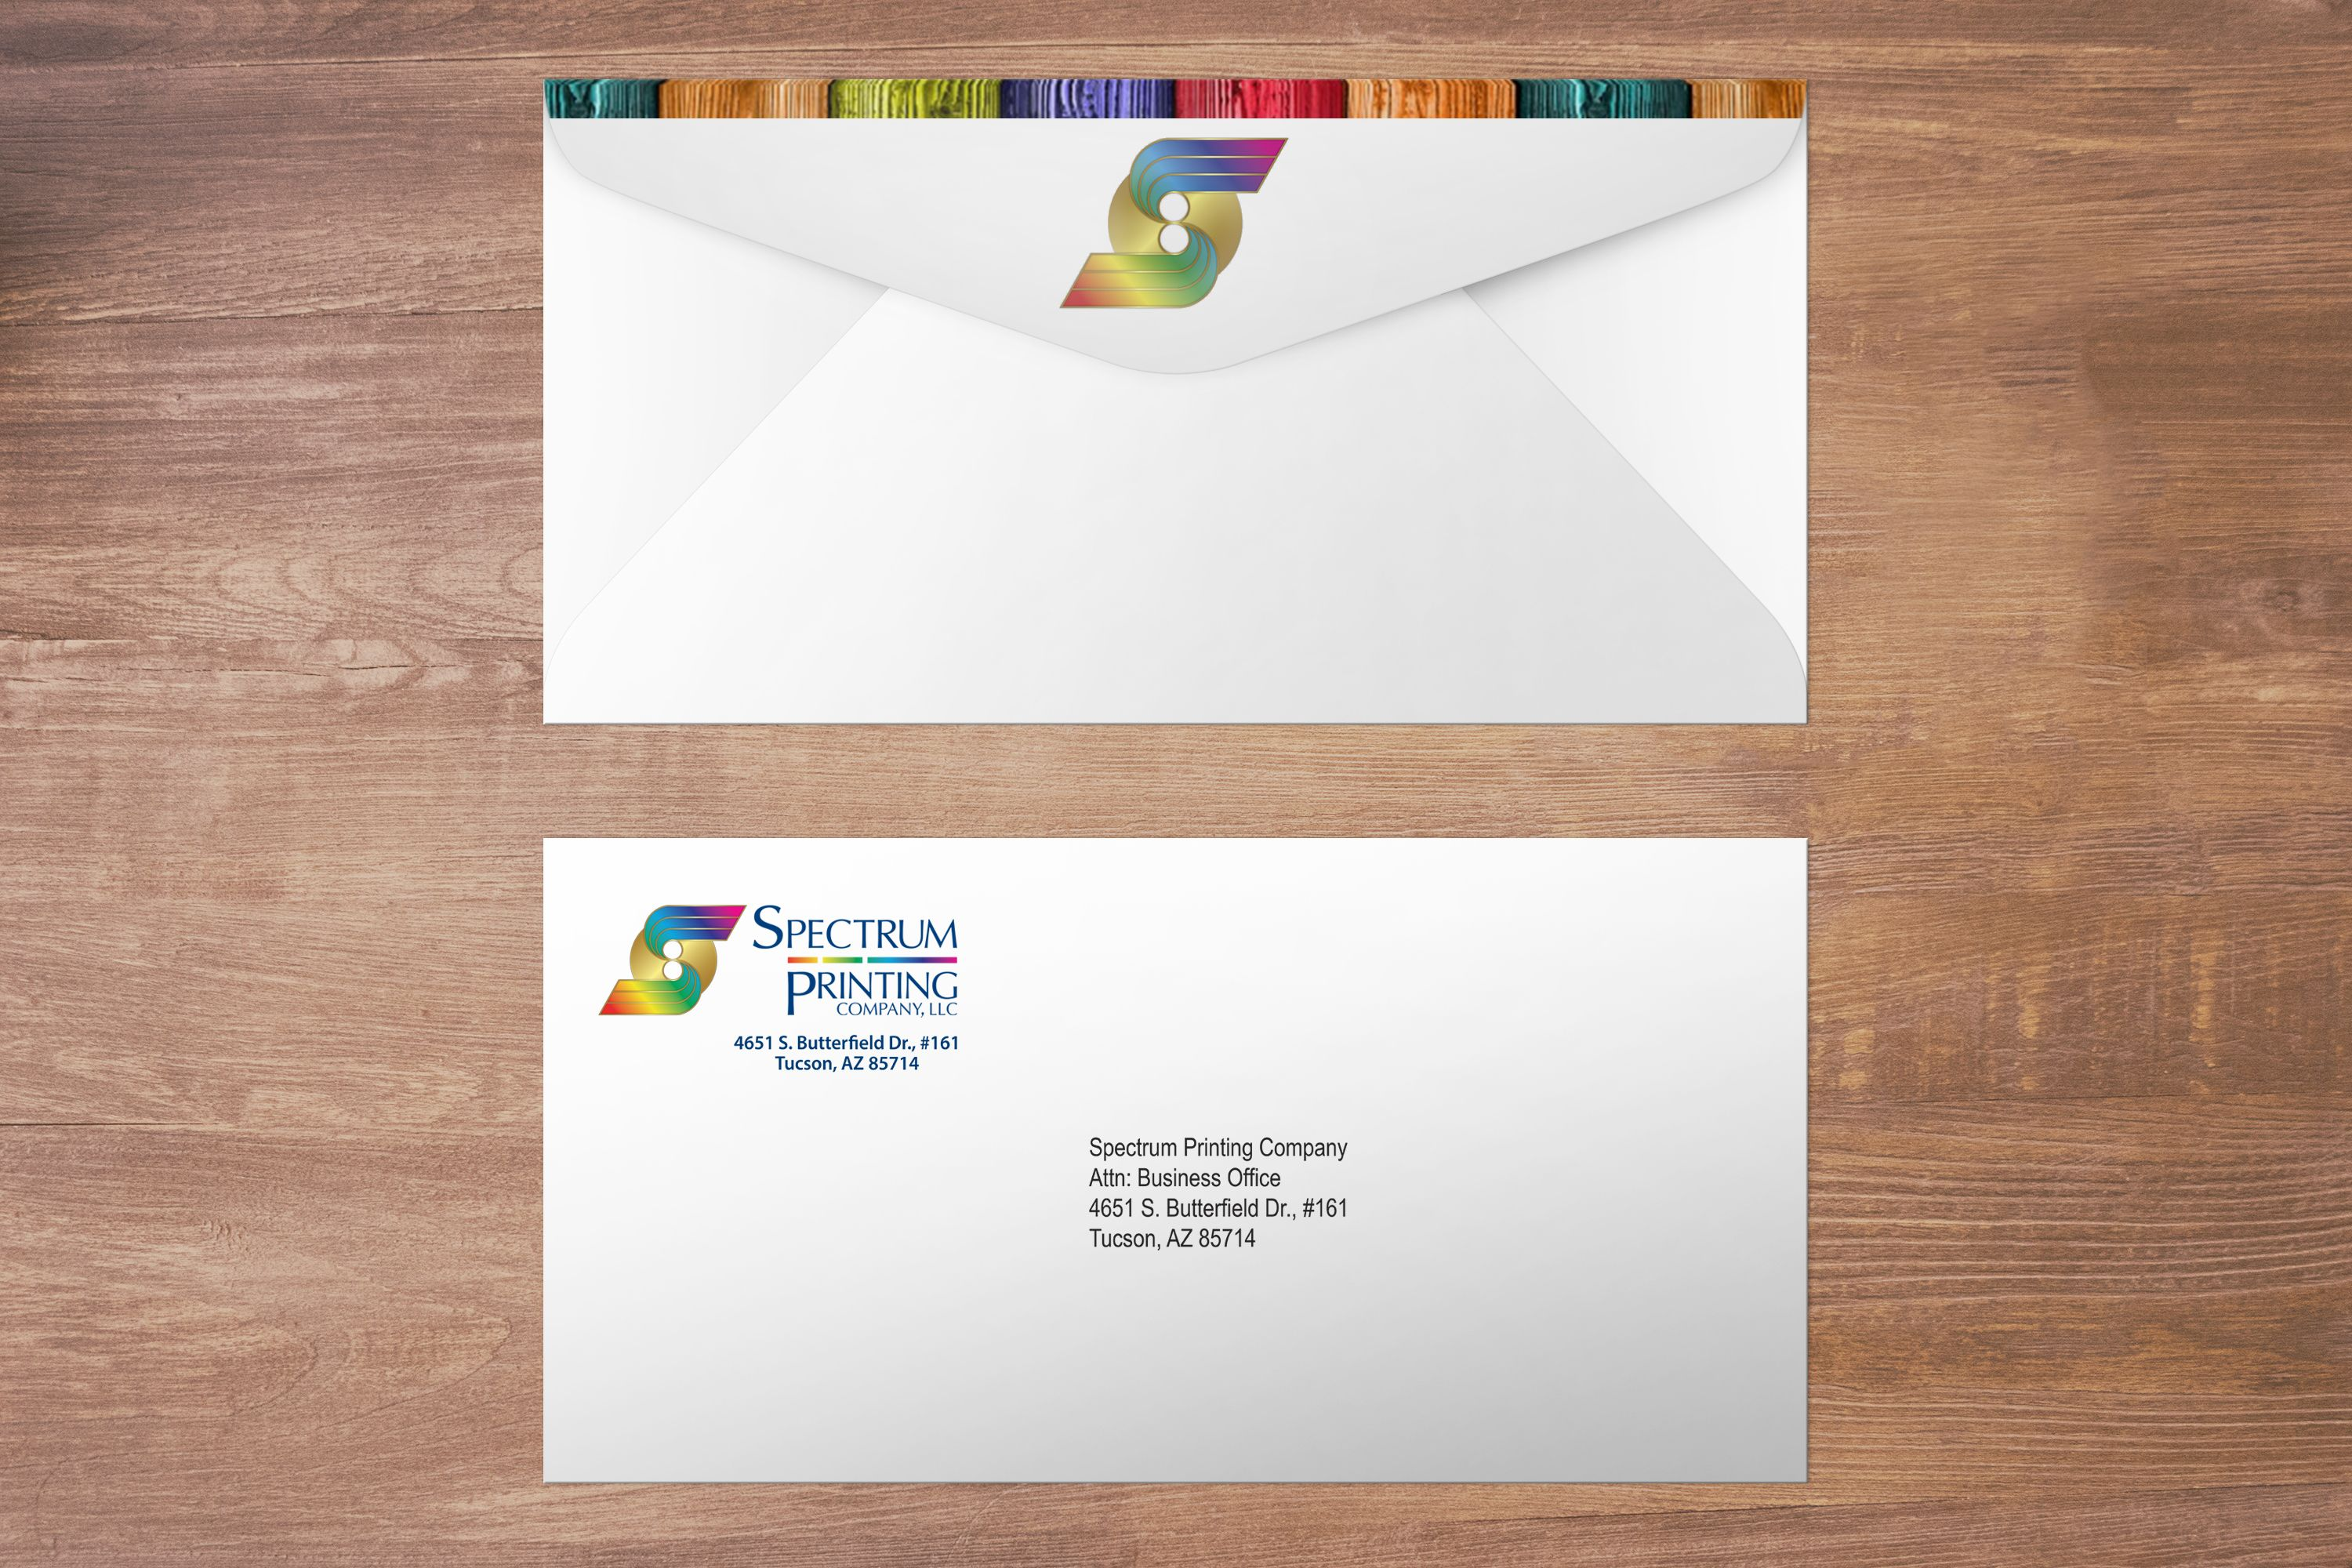 Request an estimate for printing and mailing envelopes.